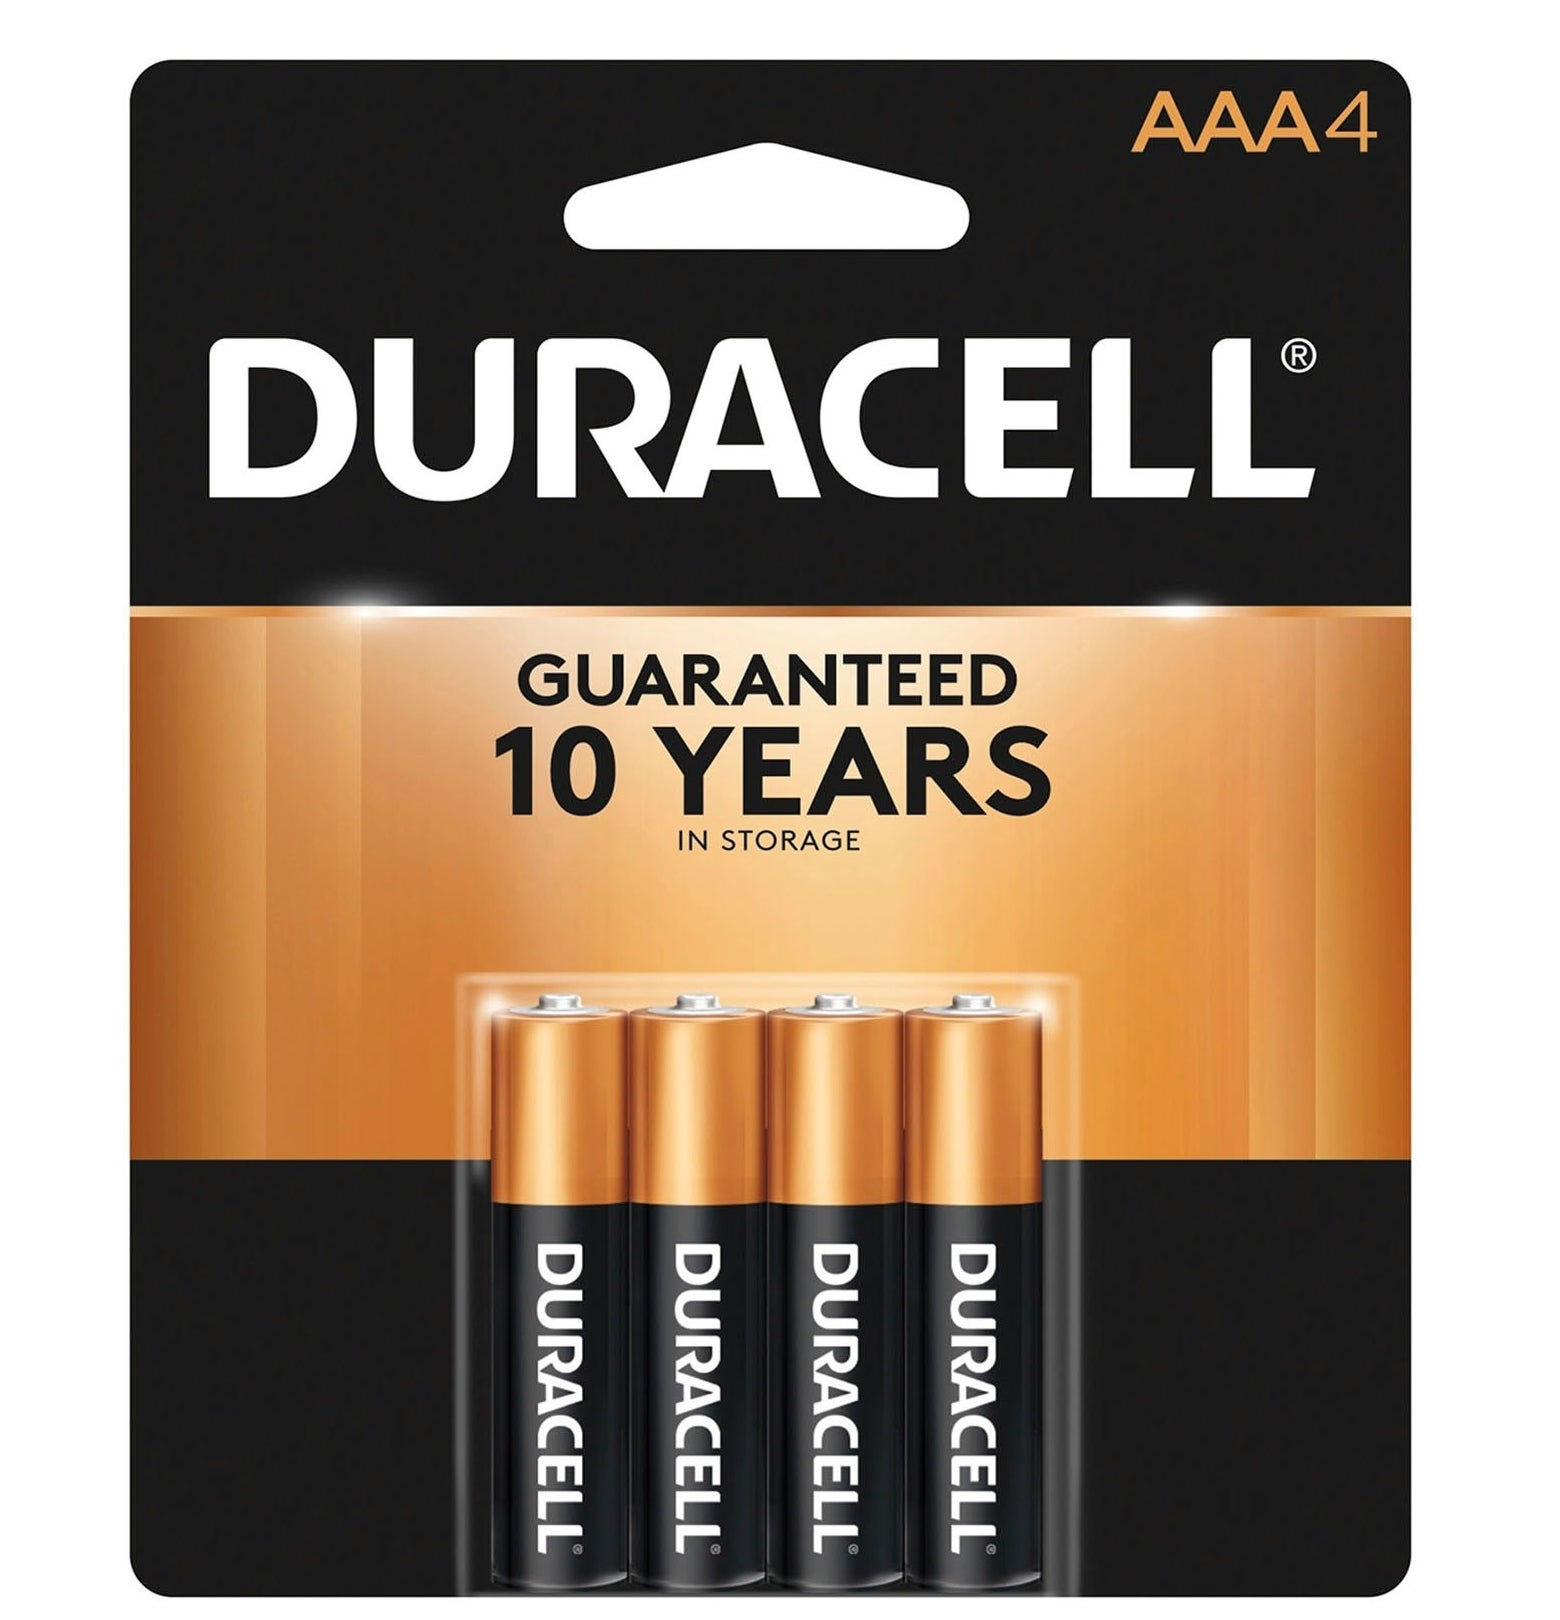 The four-pack of batteries which says they're guaranteed to last up to 10 years in storage